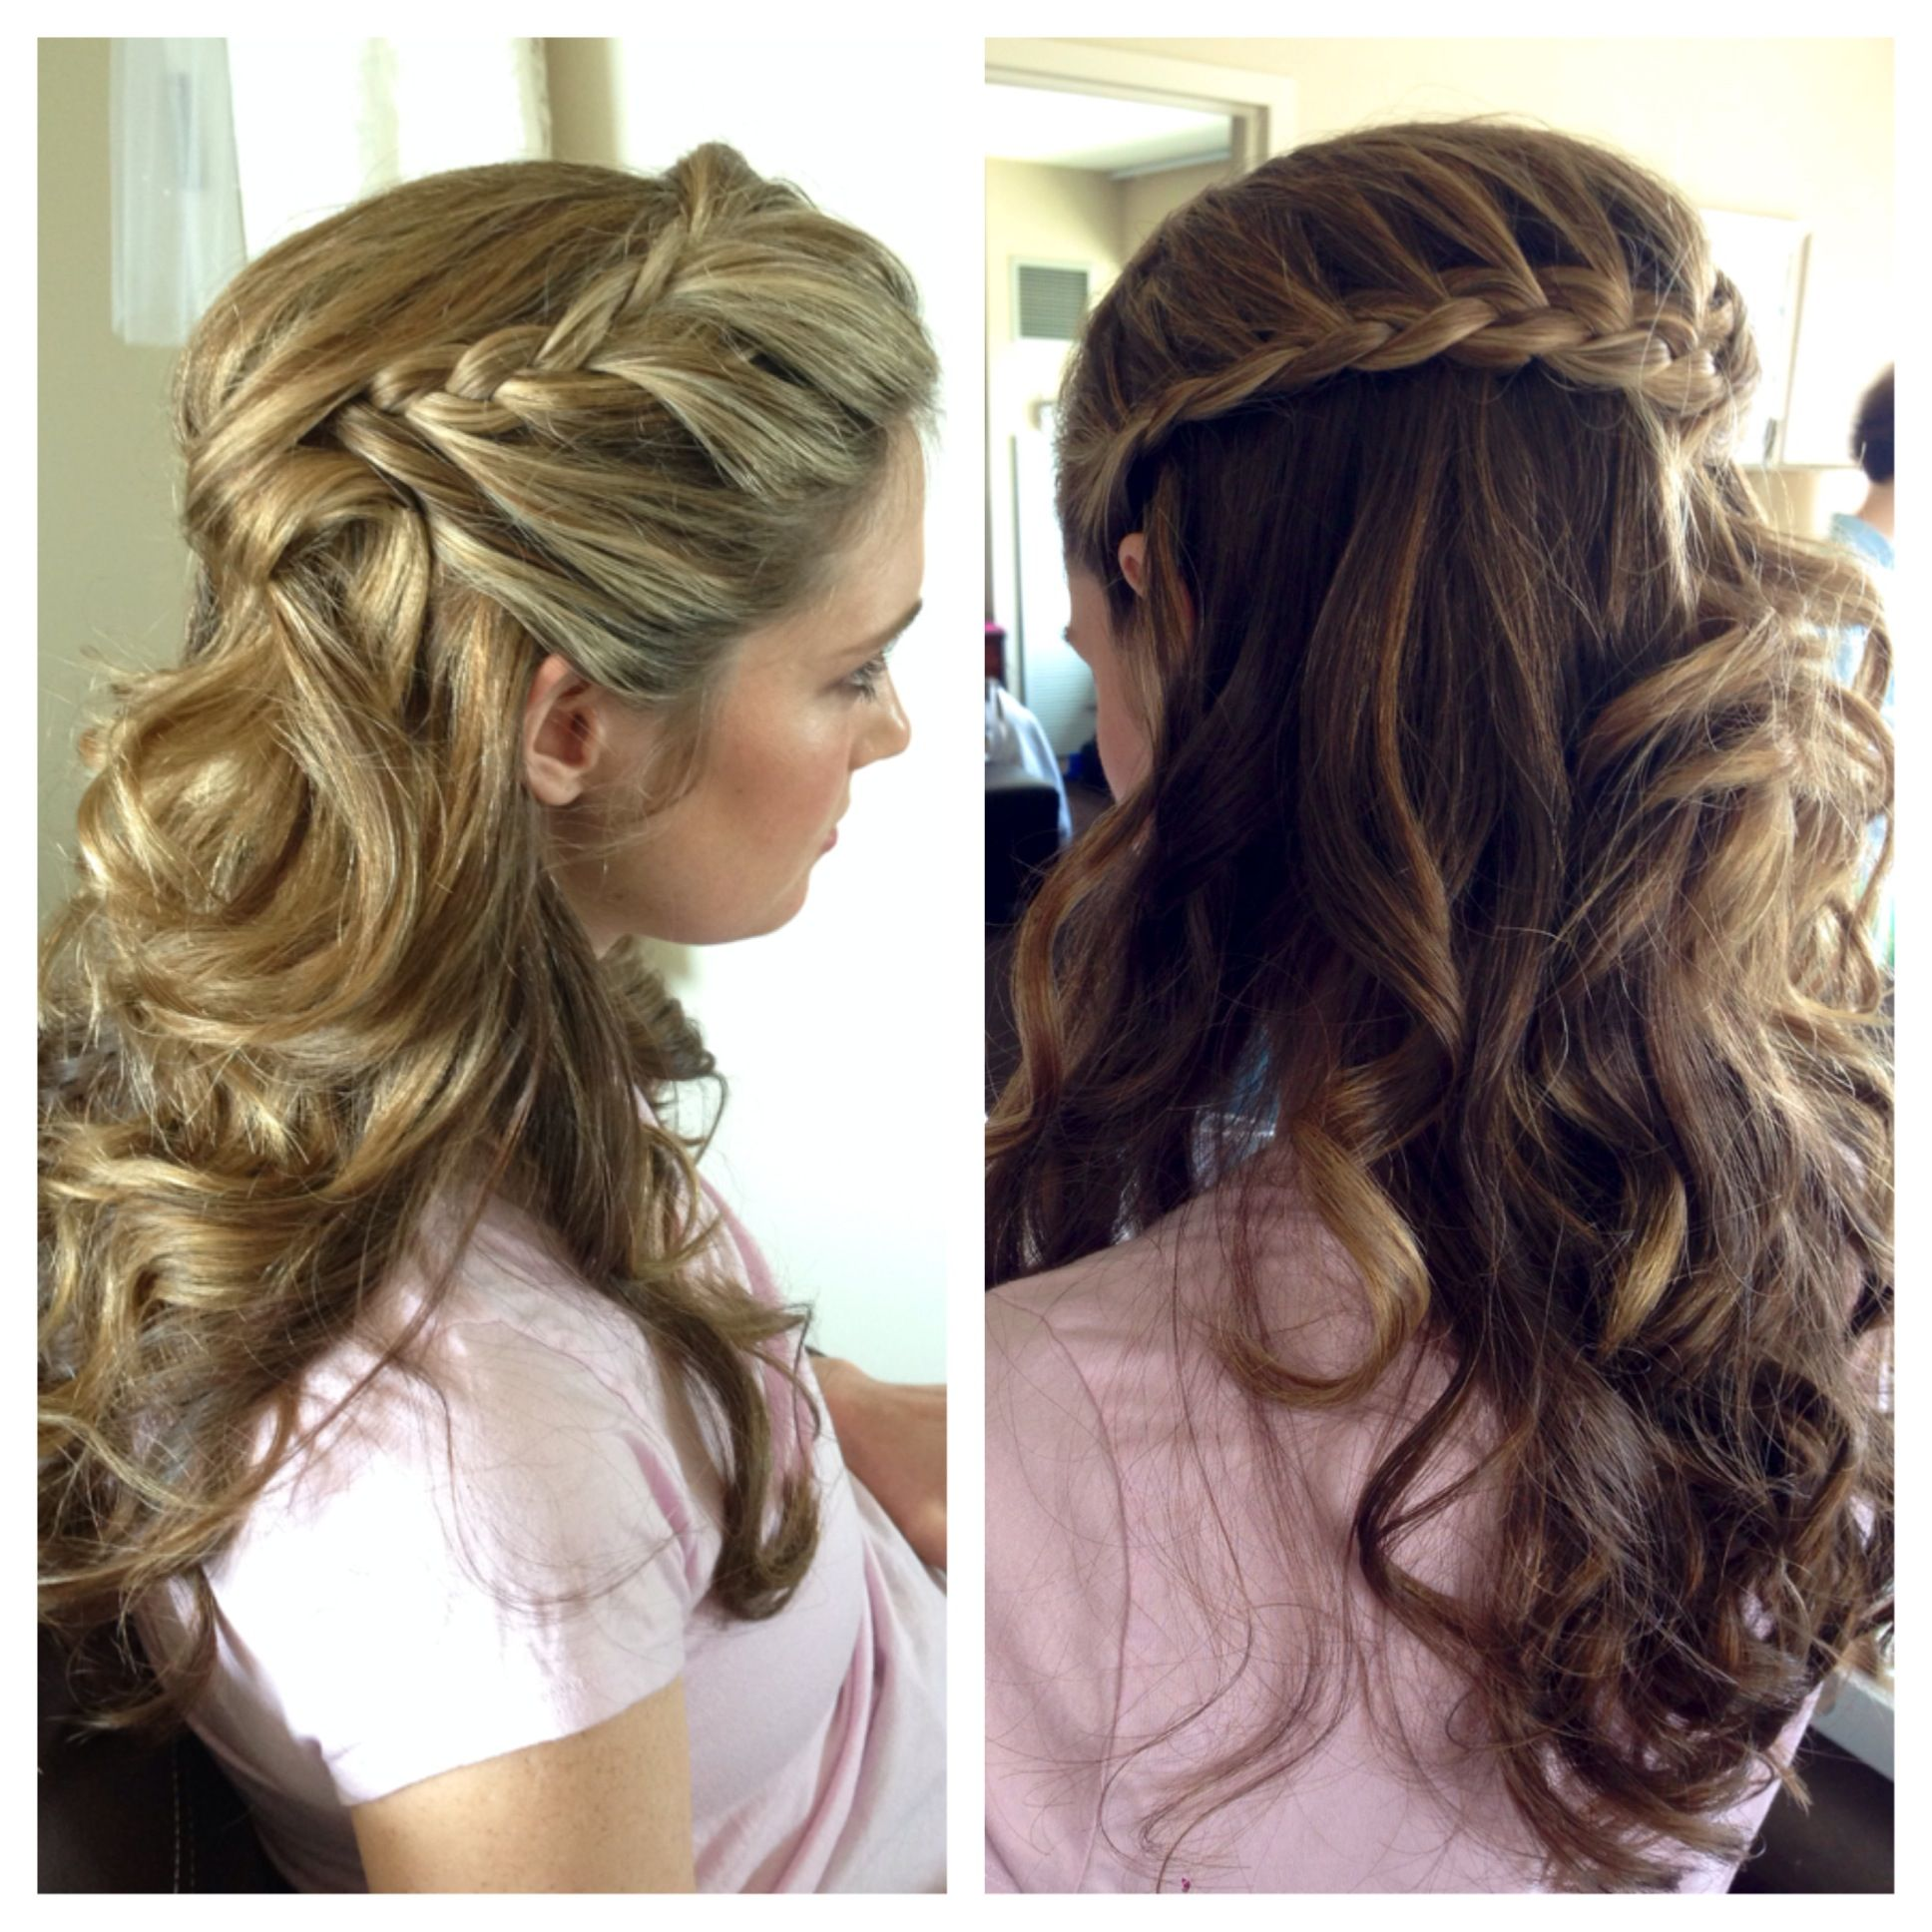 braids, bridesmaids, wedding hair, half up half down hair